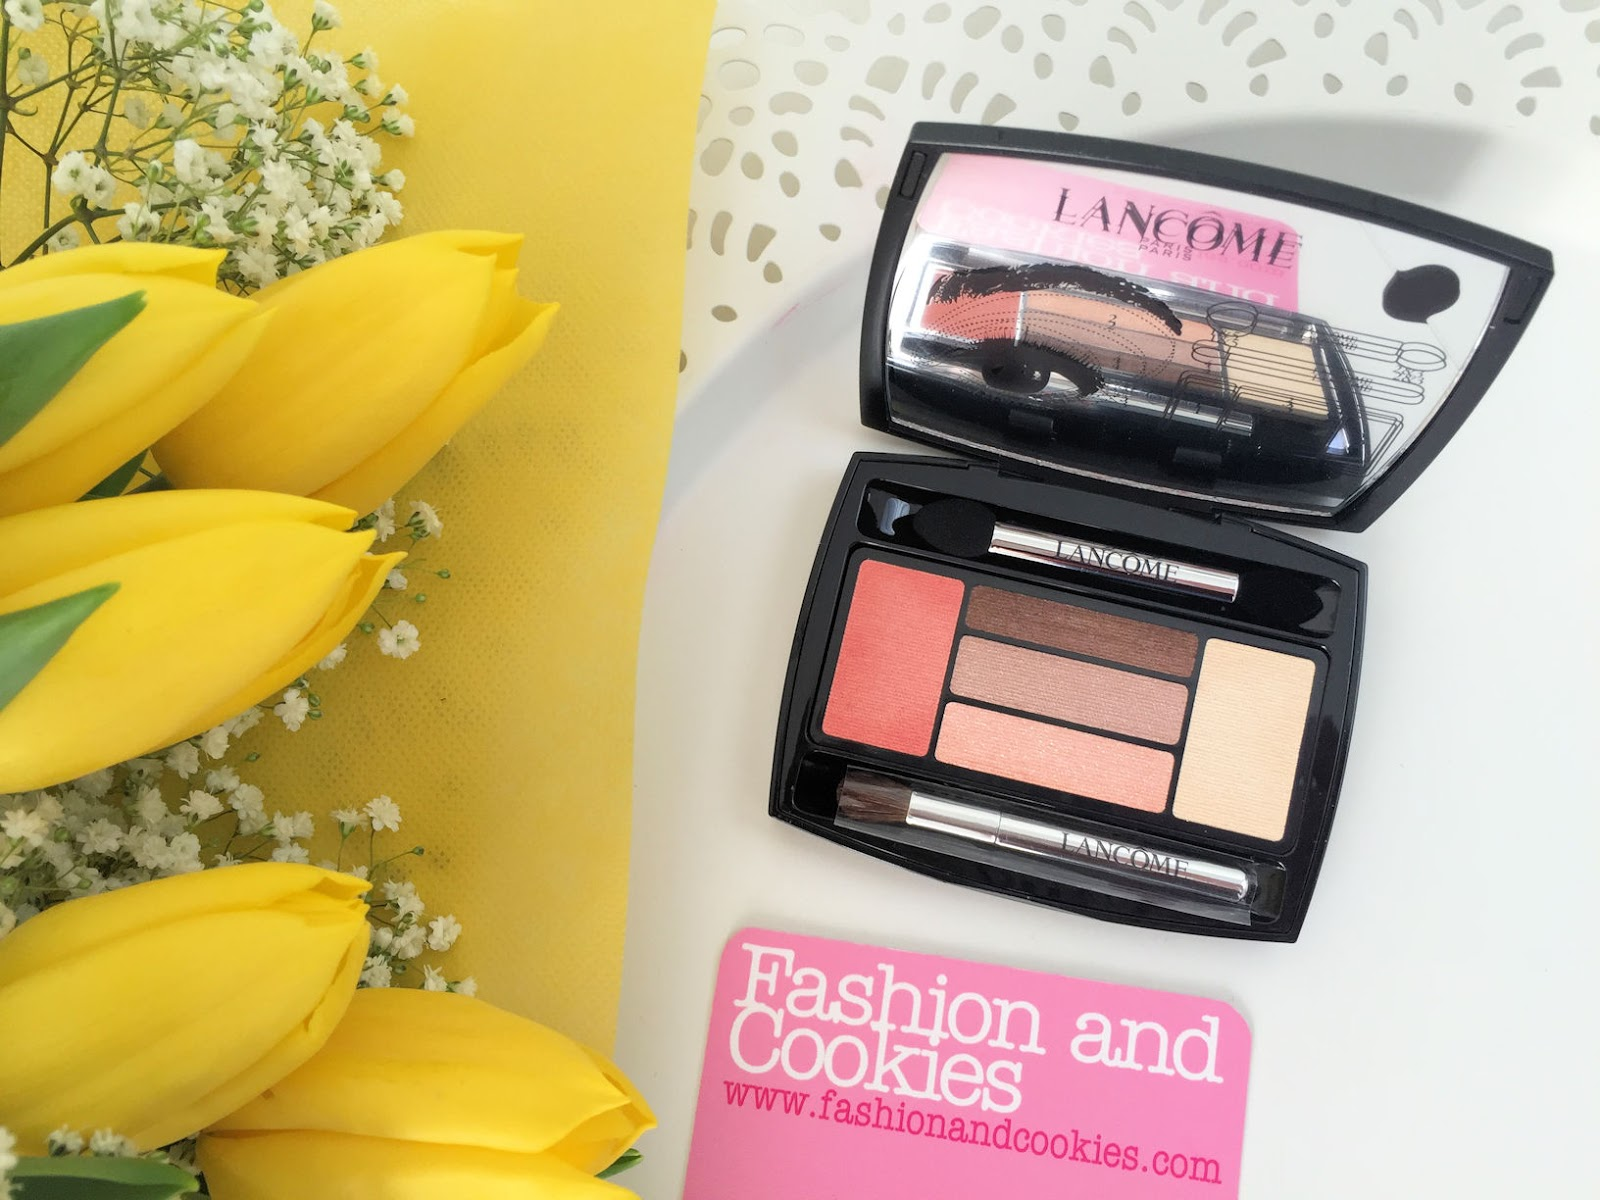 Lancôme makeup collection for Spring 2016 My Parisian Pastels eye makeup hypnose palette on Fashion and Cookies beauty blog, beauty blogger